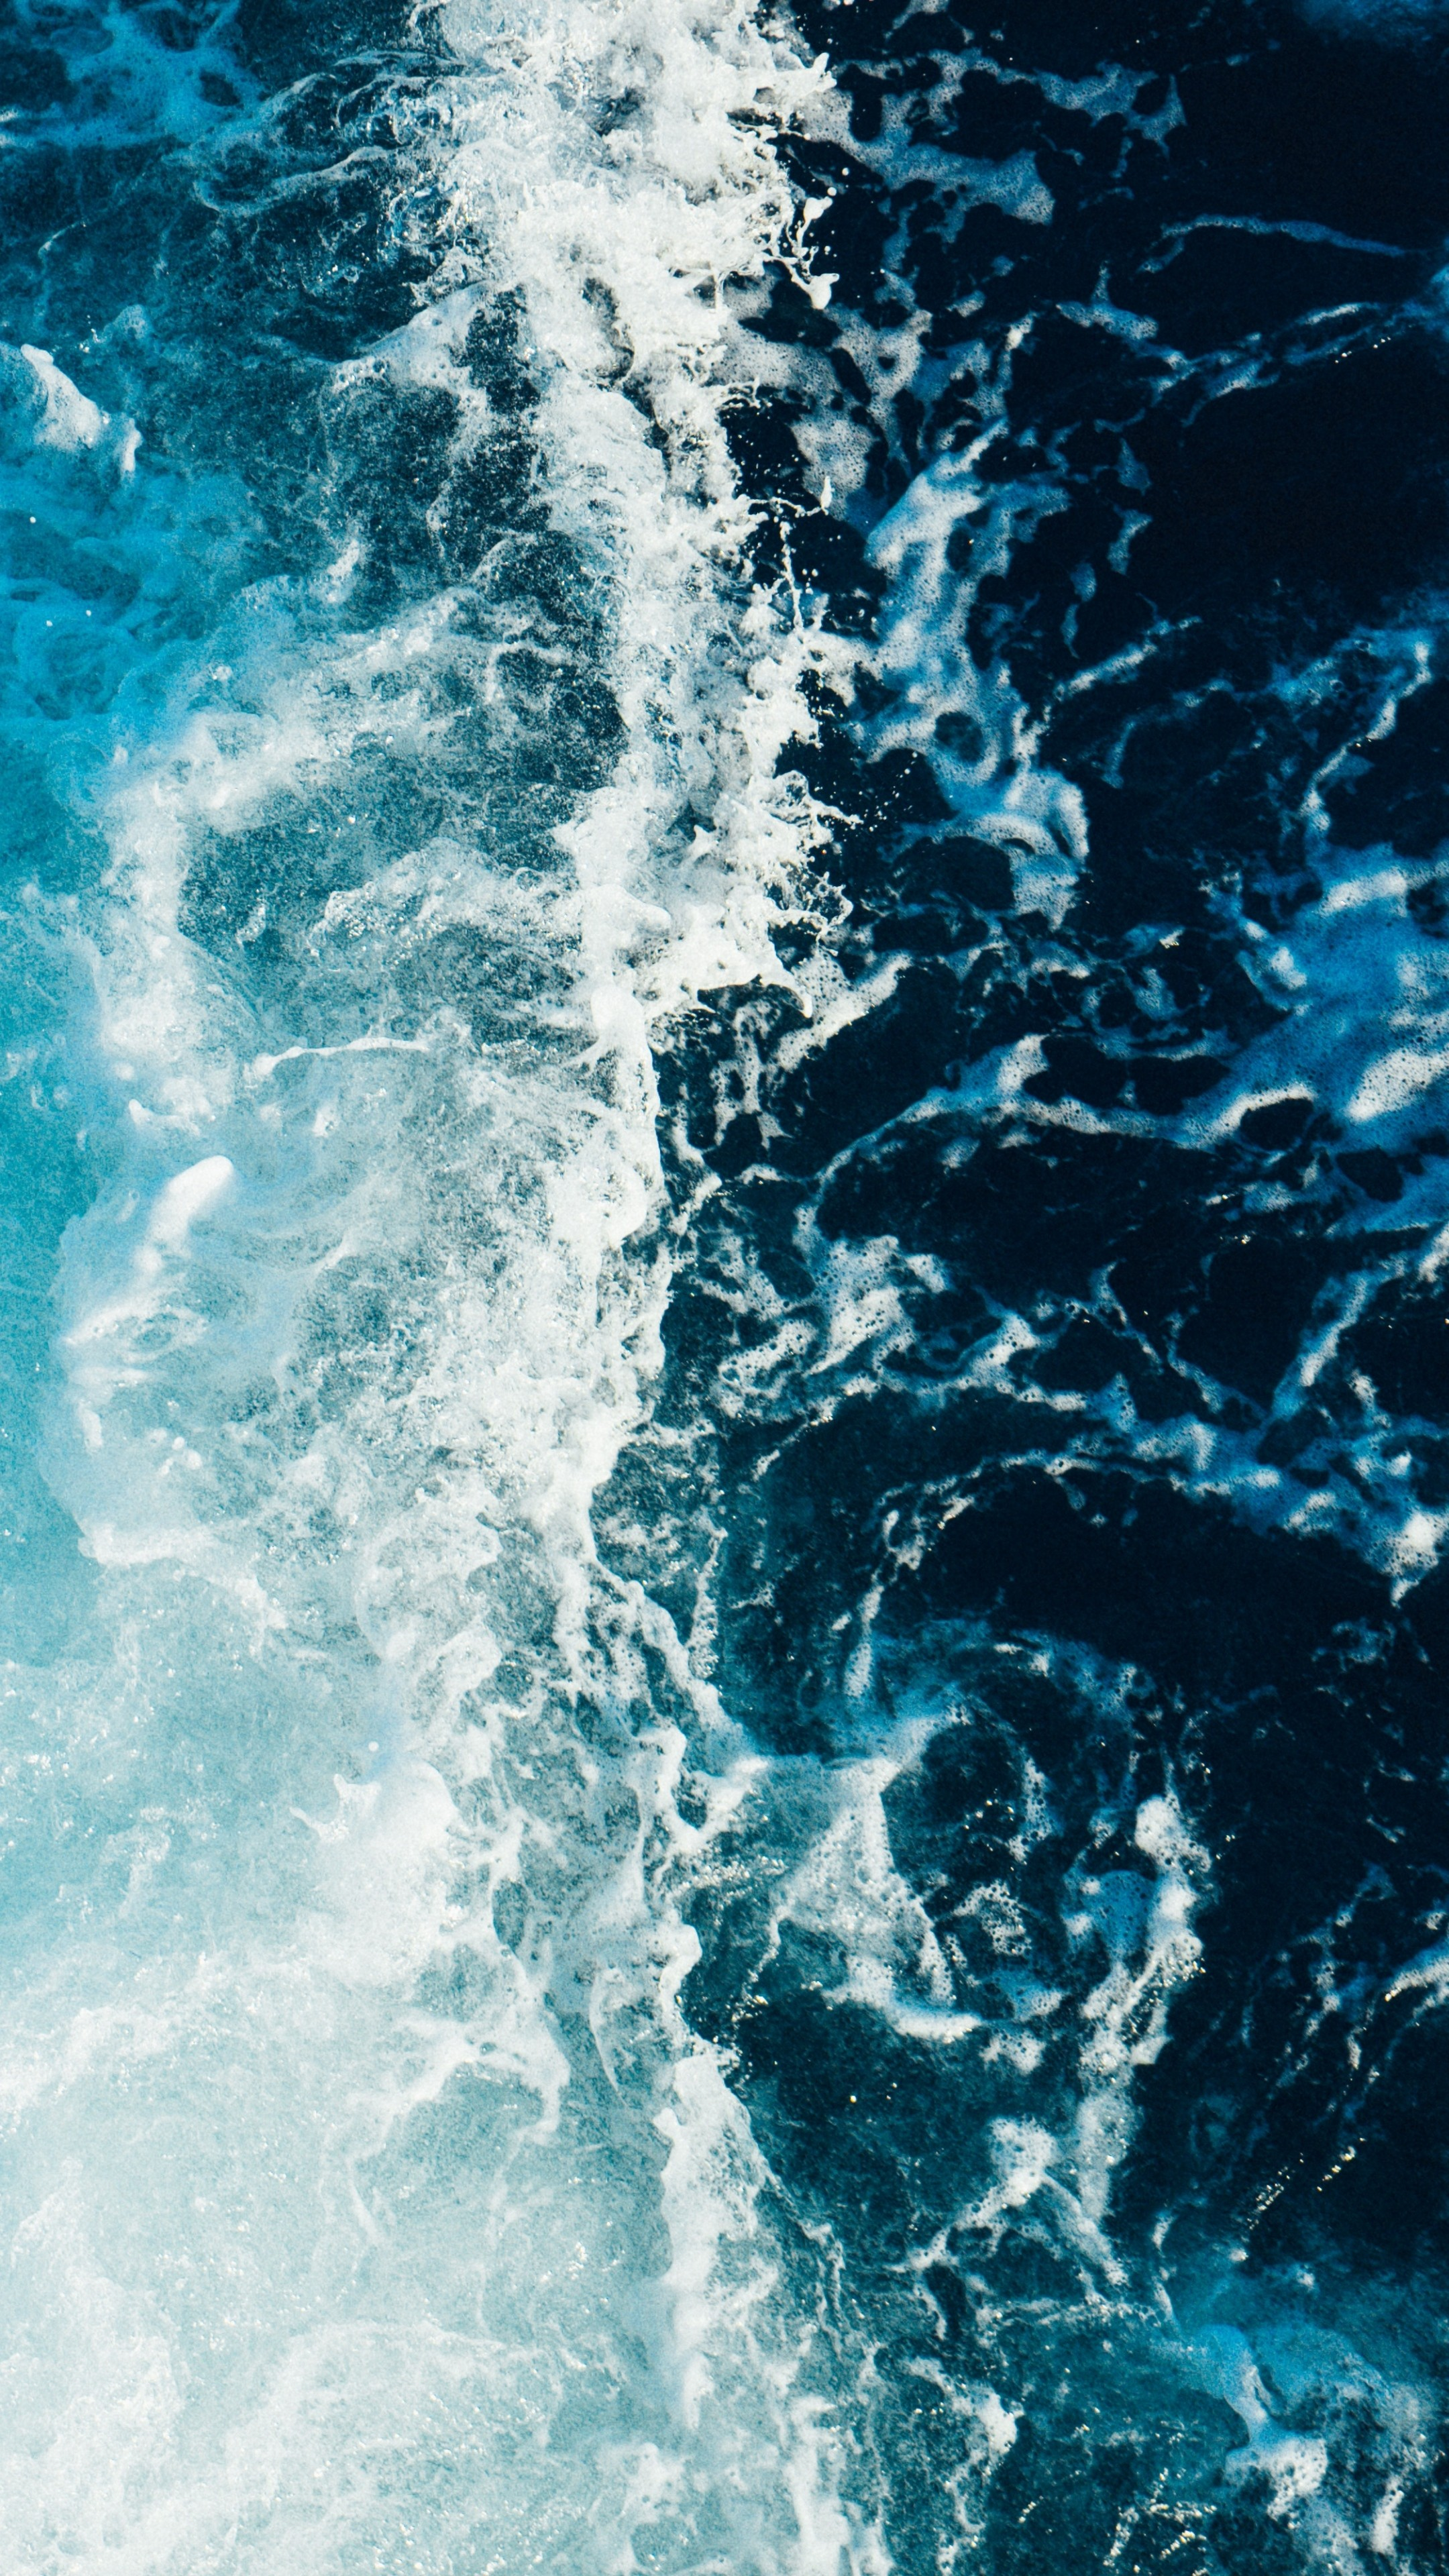 Wallpaper For Phones Fall Sea Foam Surf Wallpaper 2160x3840